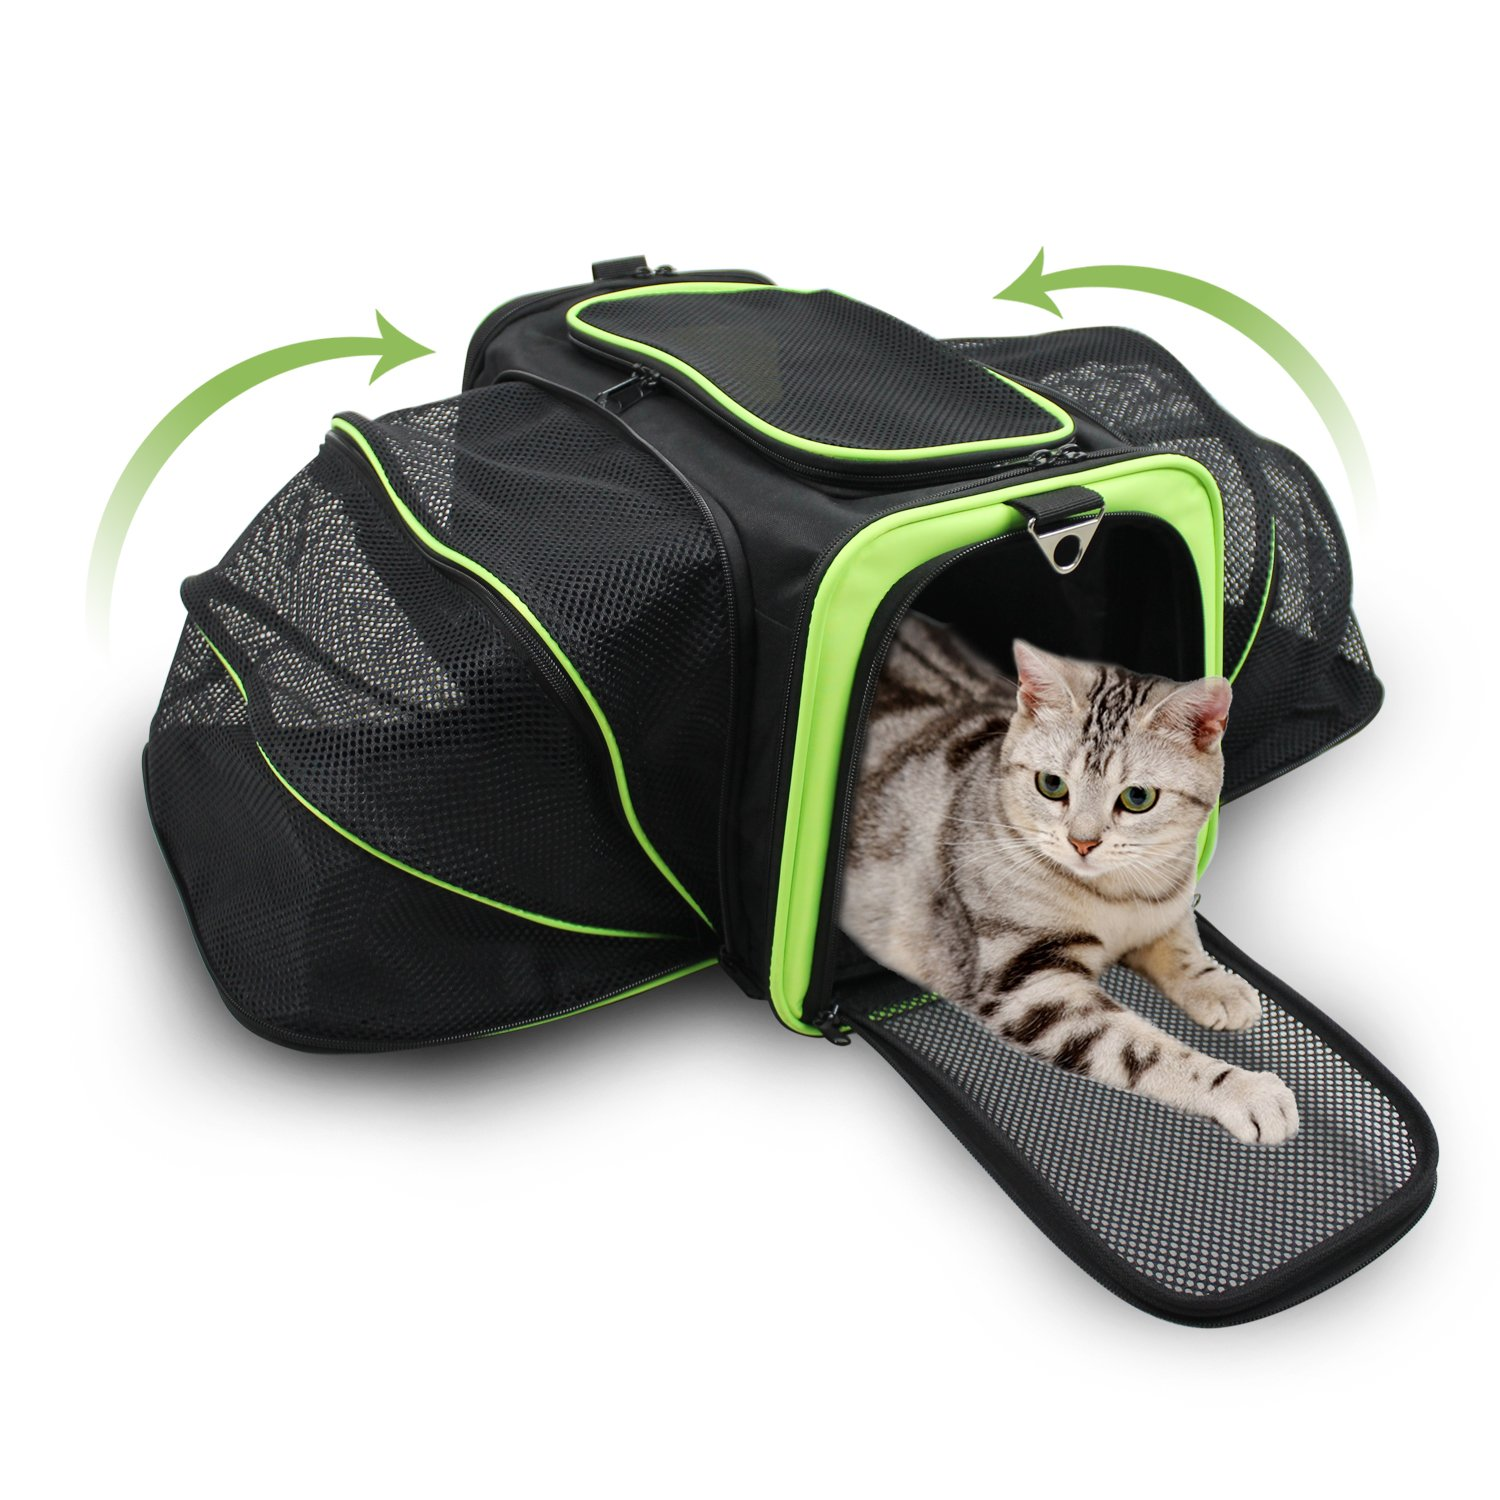 Jespet Expandable Airline Approved Pet Carrier with with Fleece Mat by, Foldable Soft Sided Travel Dog Carrier for Cats Kitten Puppy (16'' L x 9'' W x 9'' H, Black + Neon Green) by Jespet (Image #3)